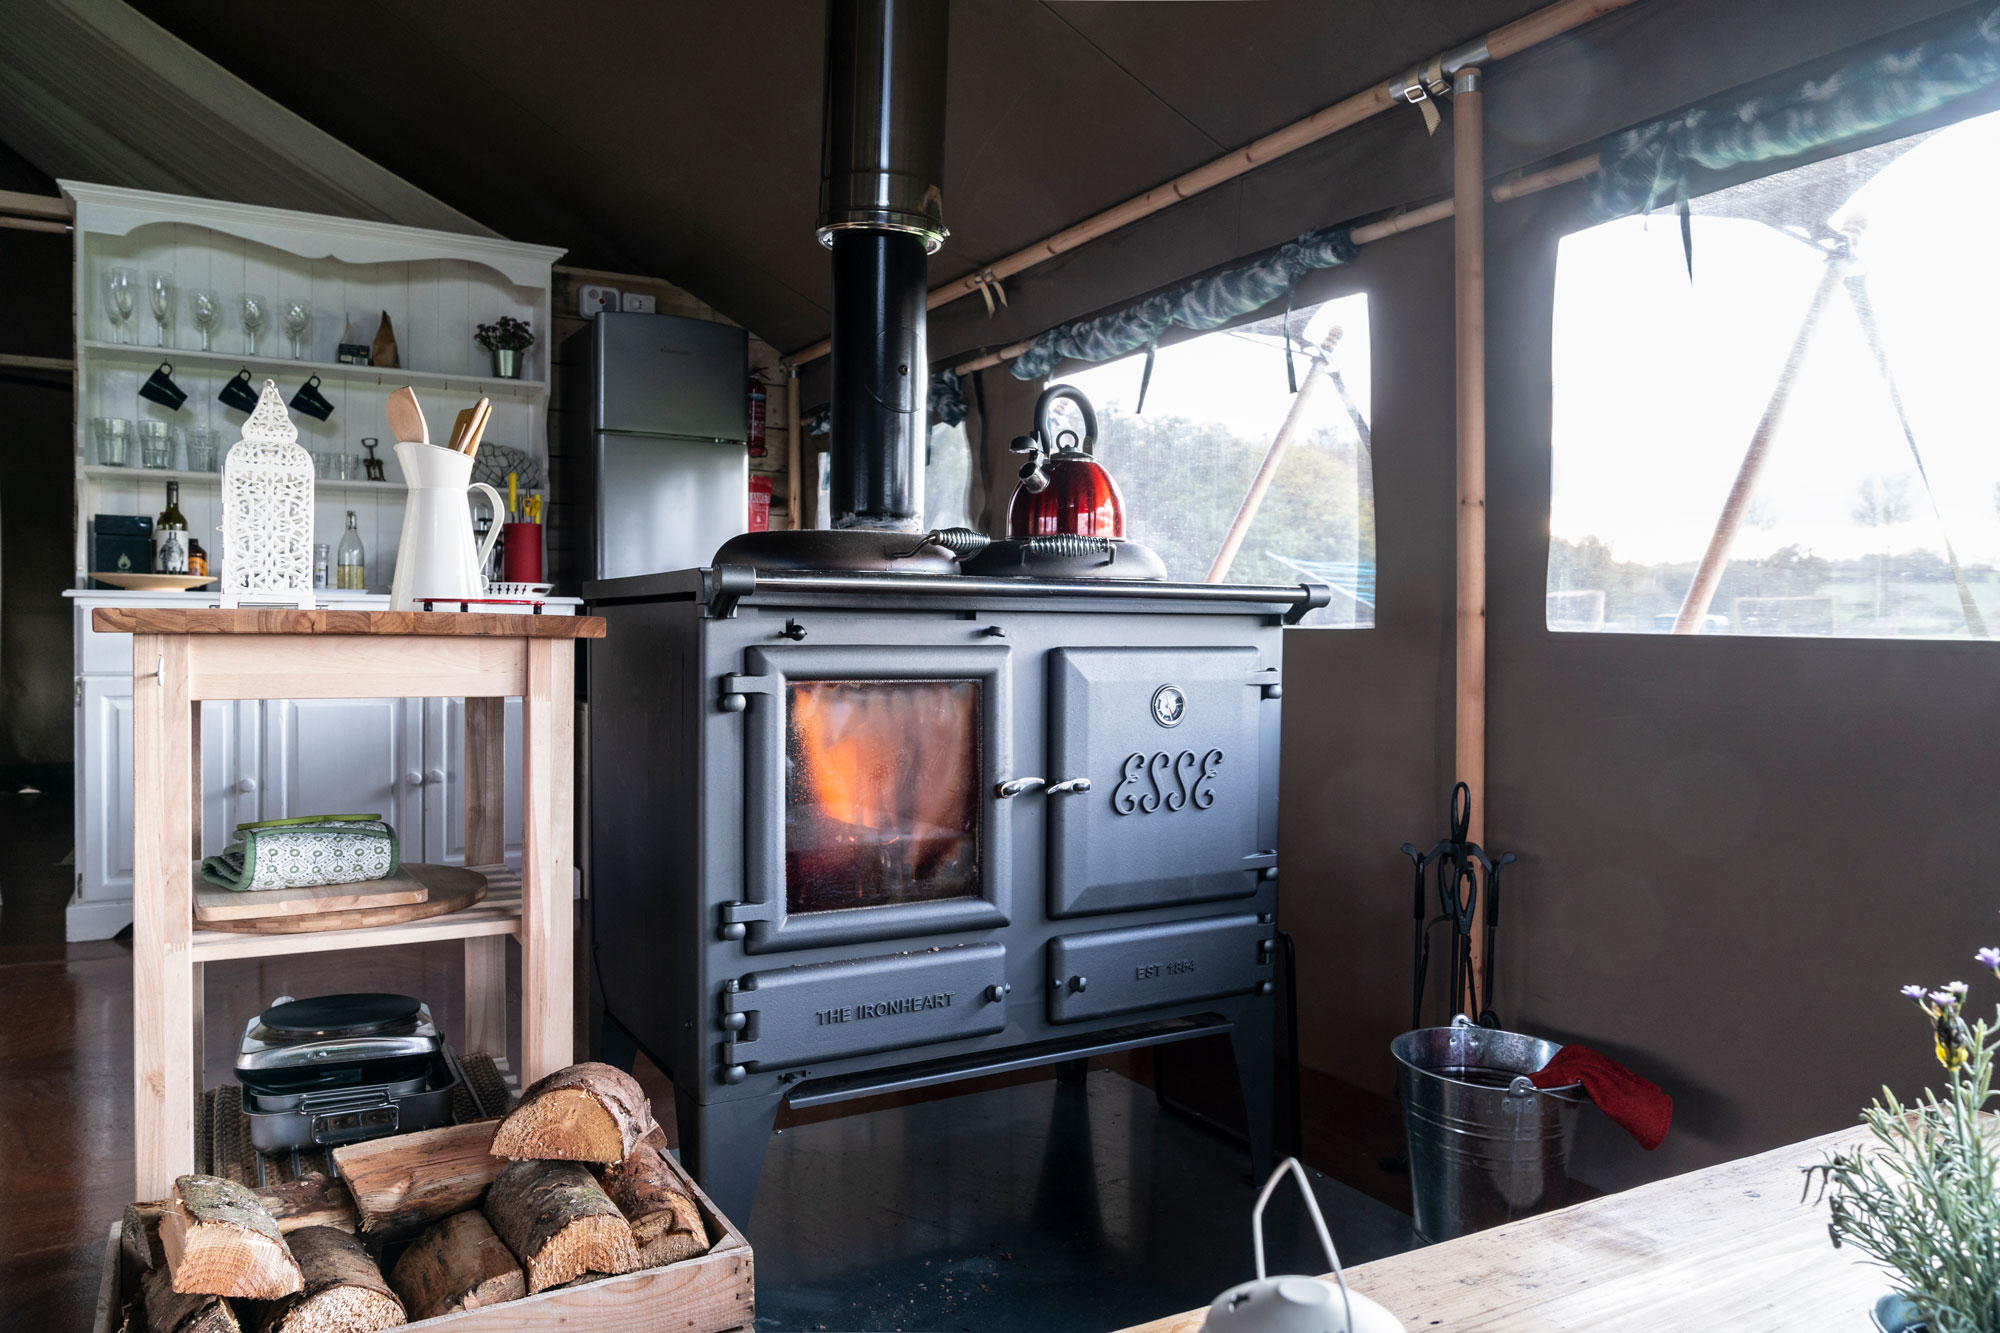 Middlestone Farm – Glamping in the English countryside by Soonafternoon